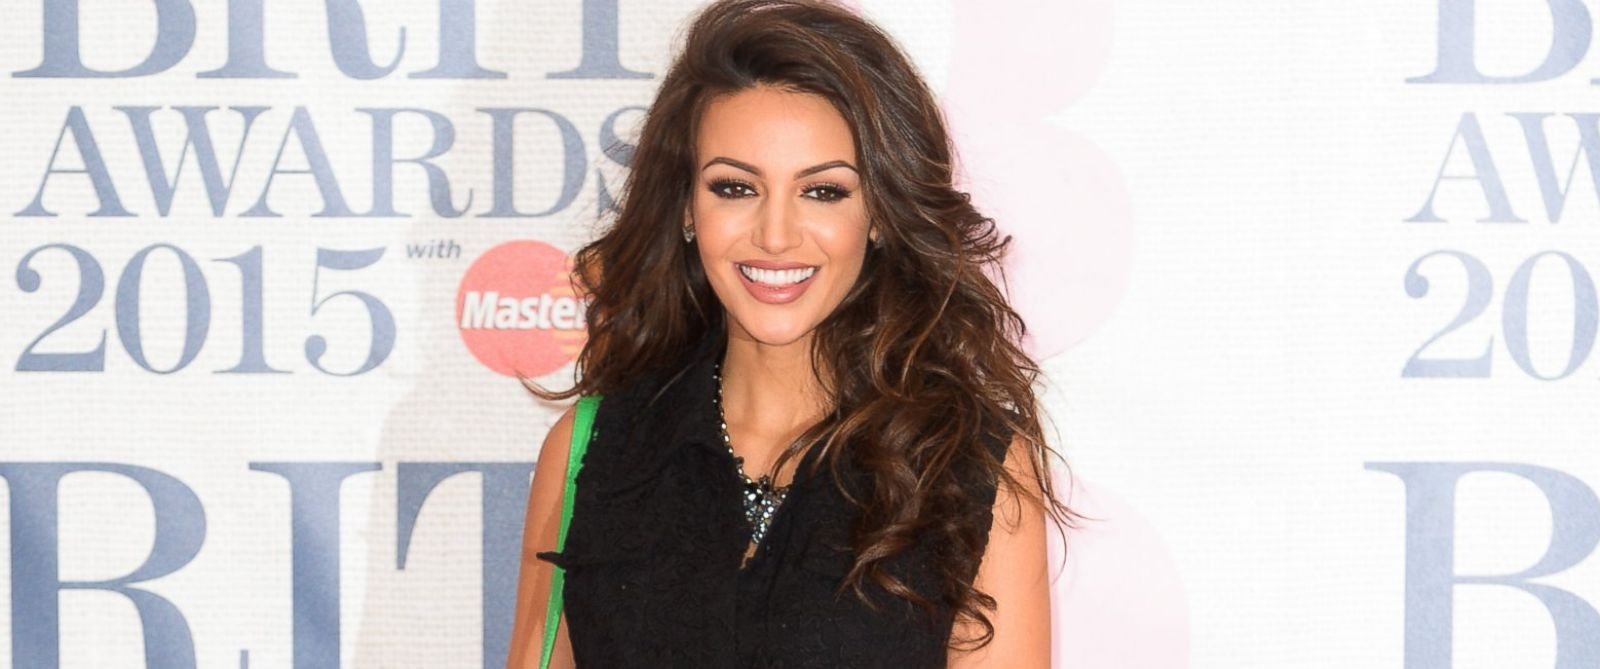 PHOTO: Michelle Keegan attends the BRIT Awards 2015 at The O2 Arena, February 25, 2015 in London.